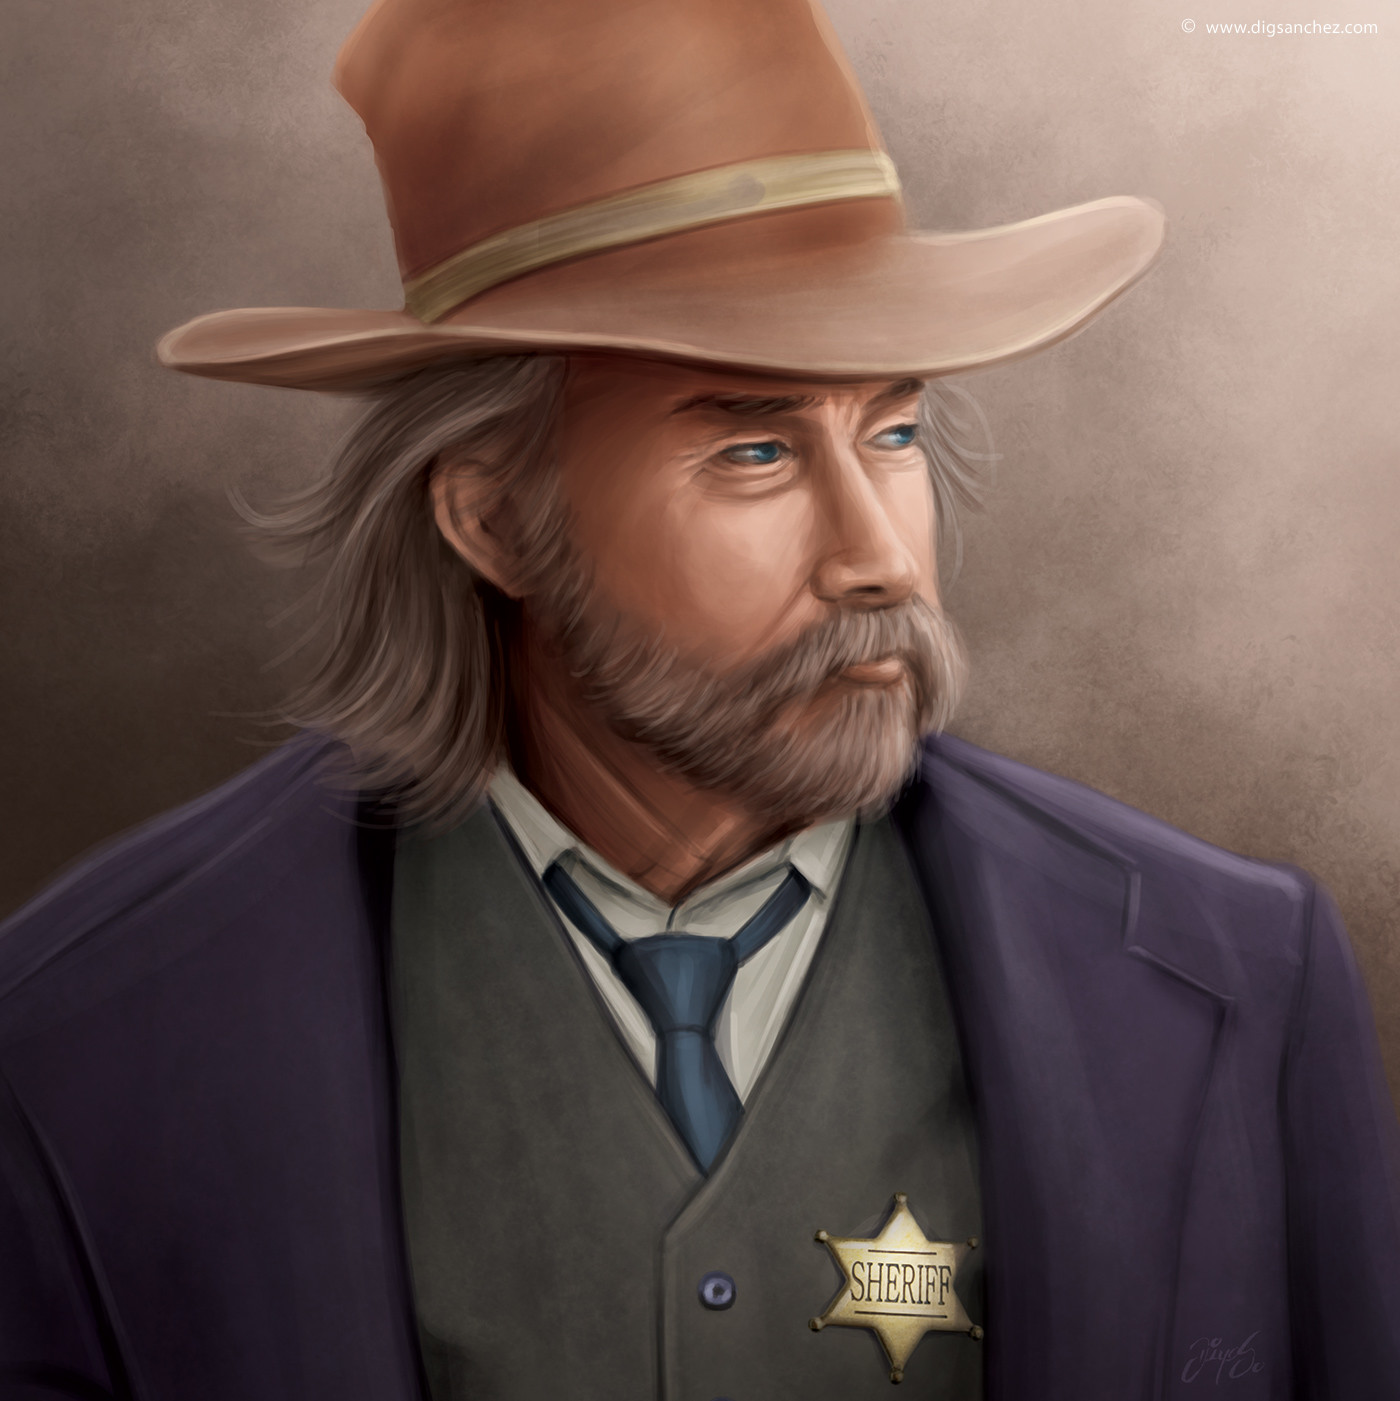 Game character - Sheriff